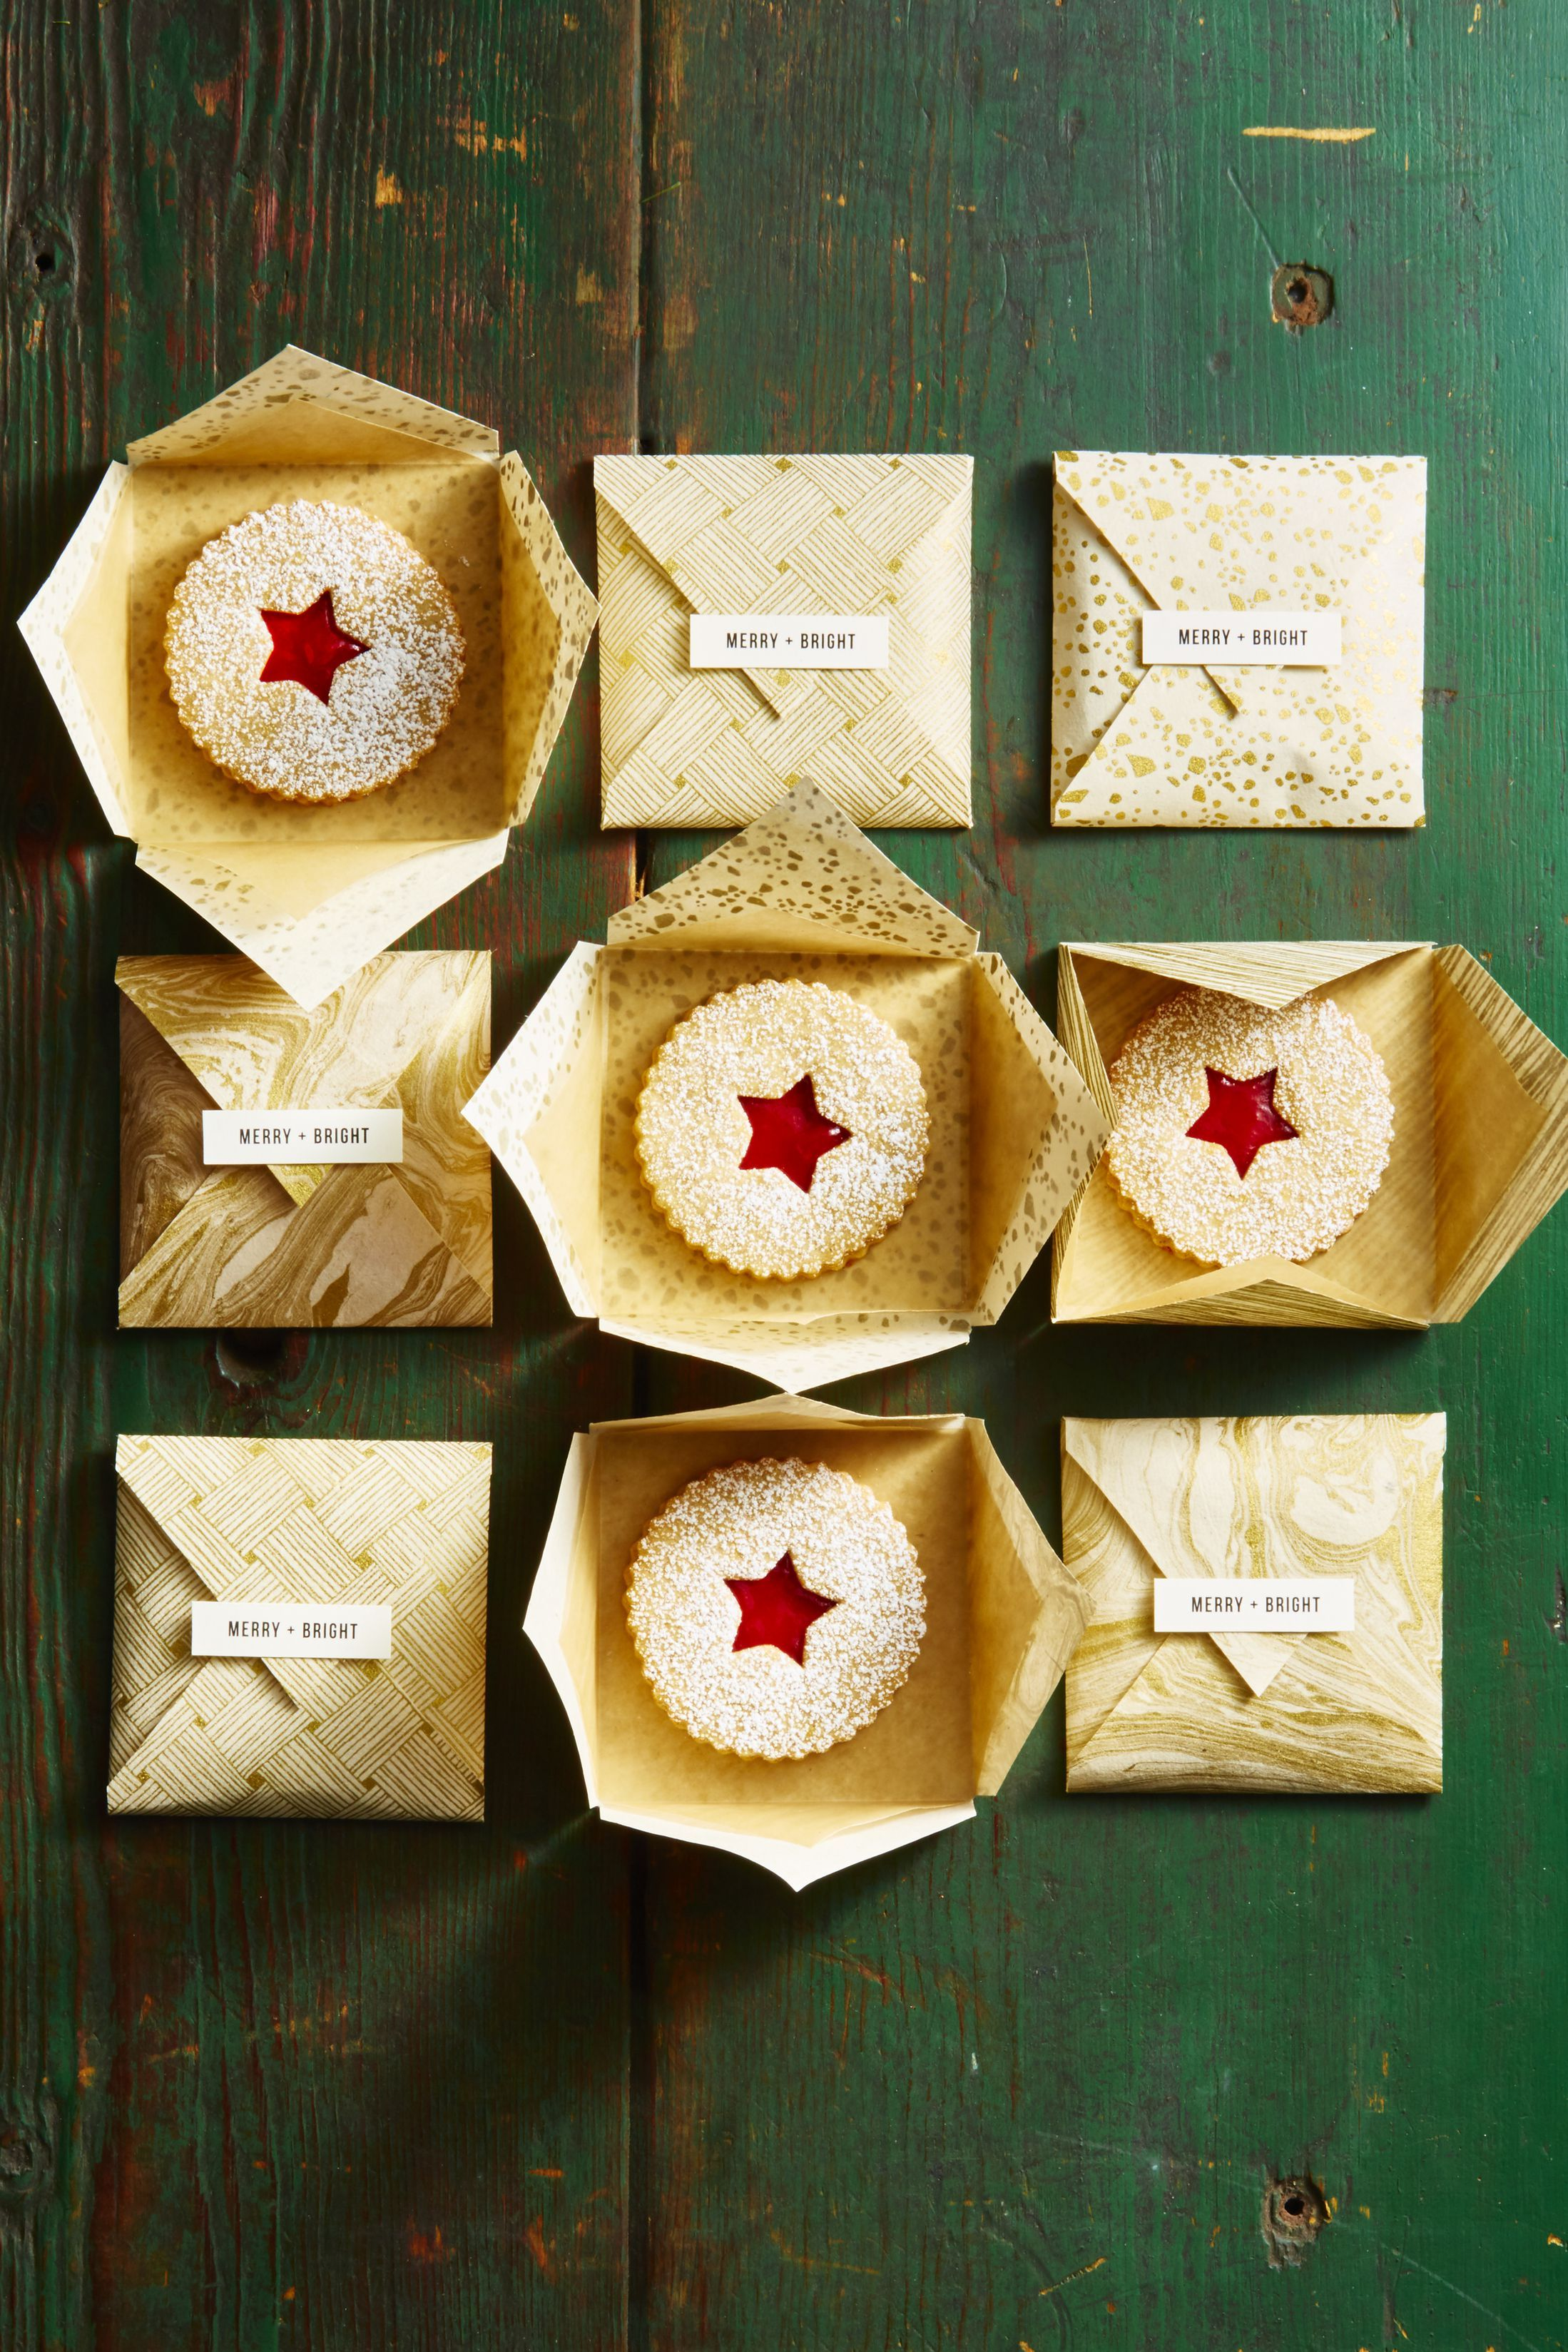 50 Homemade Christmas Food Gifts - DIY Ideas for Edible Holiday ...